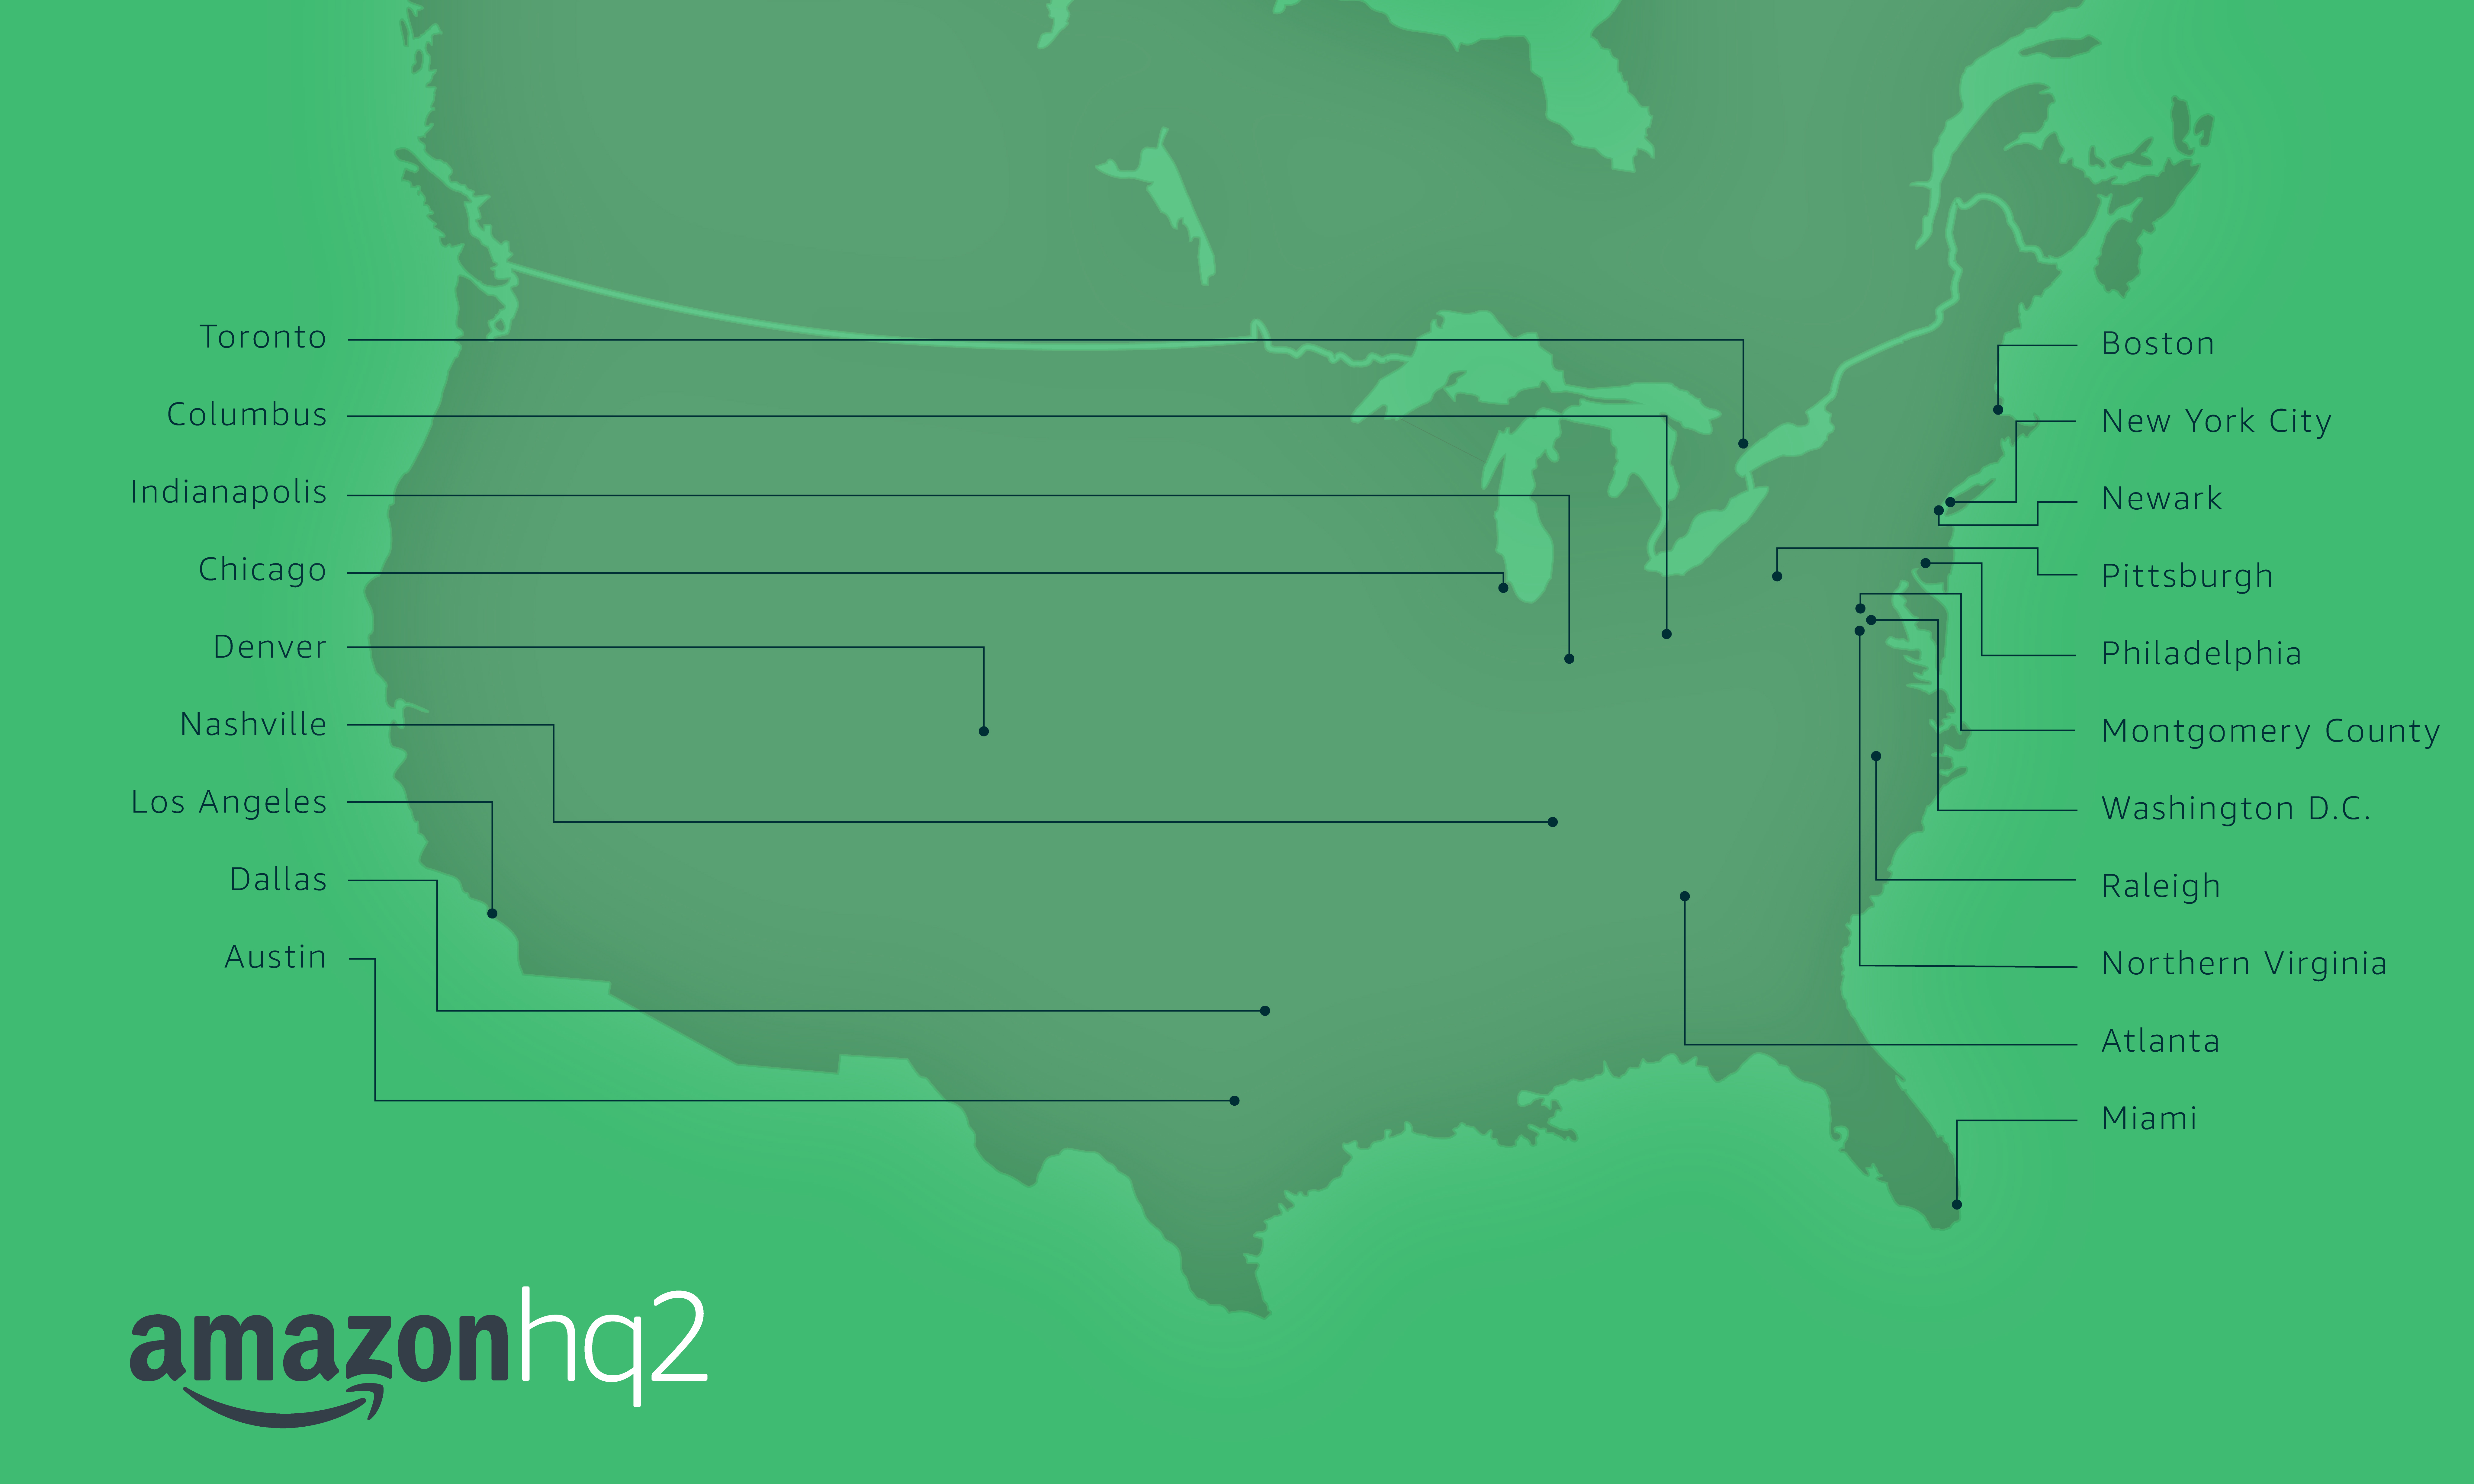 amazon hq2 candidate cities